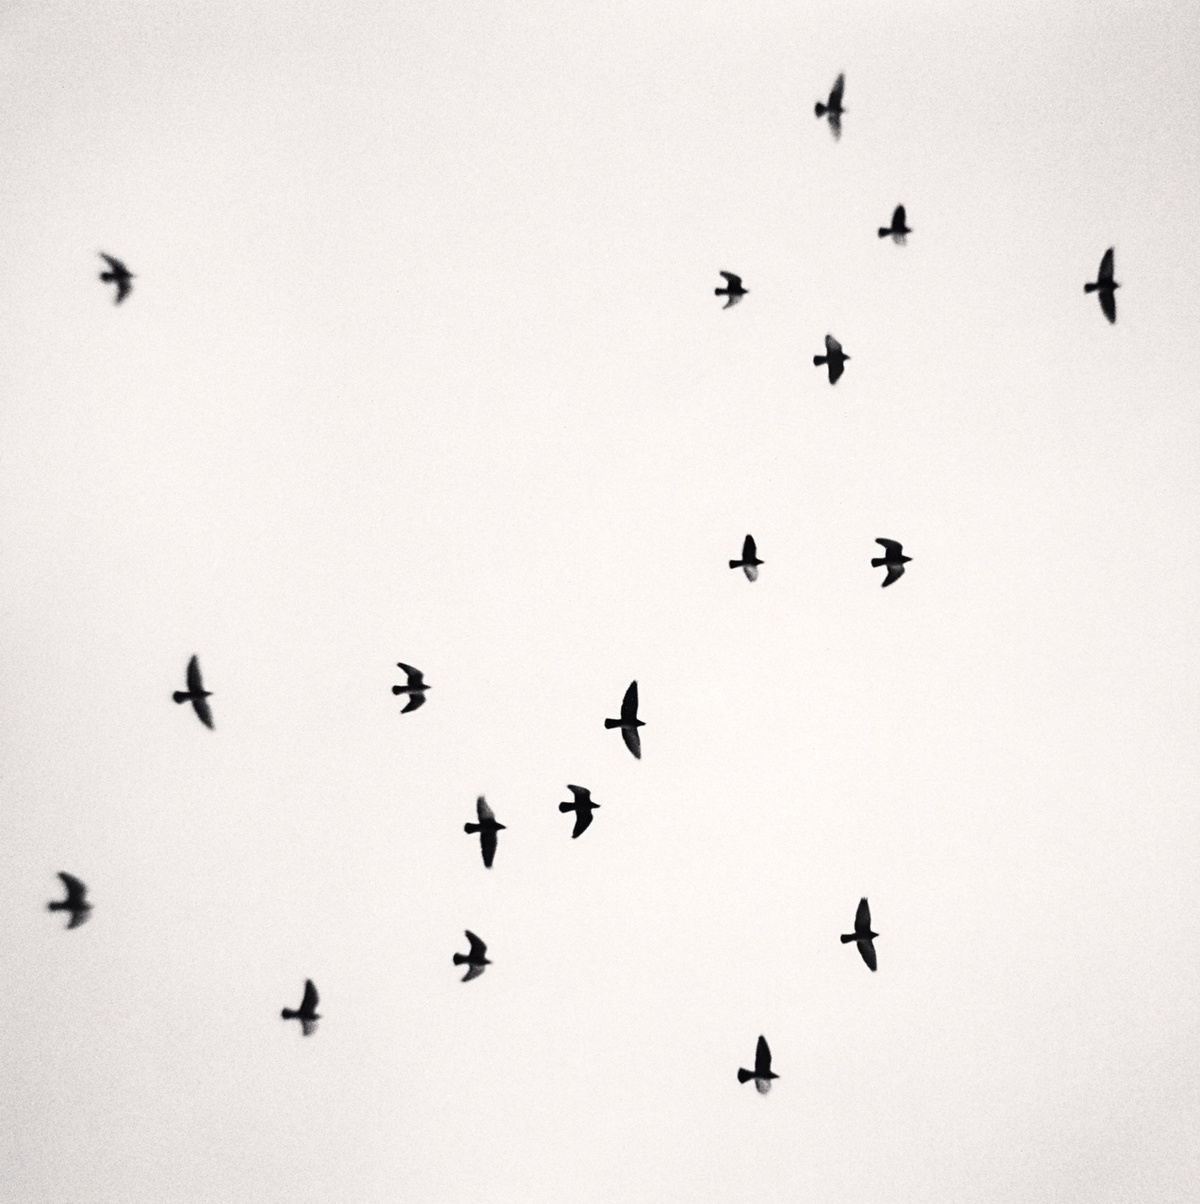 Michael Kenna Eighteen Birds, Reggio Emilia, Italy 2007 Sepia Toned Silver Gelatin Print From An Edition Of 45 8 x 8 Inches